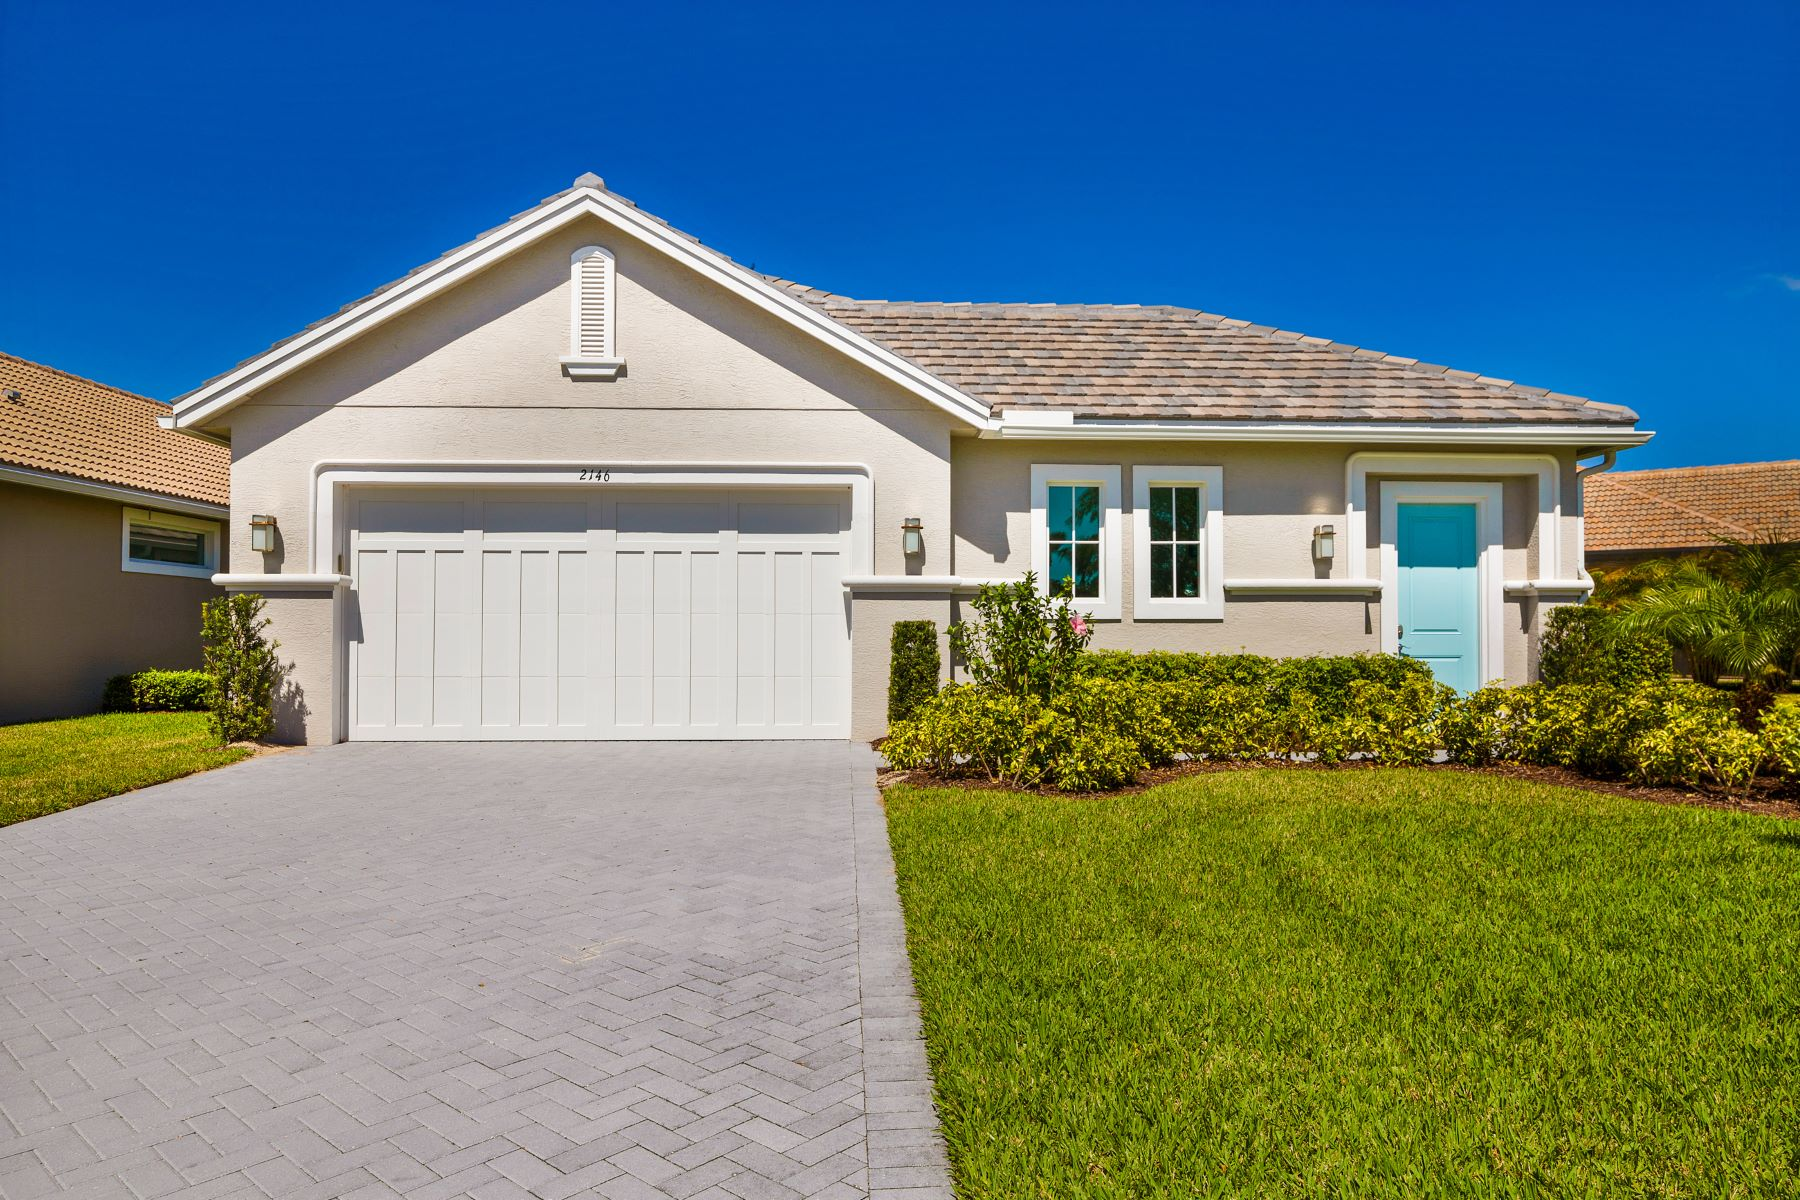 Single Family Home for Sale at New Lakefront Courtyard Home 2146 Falls Circle Vero Beach, Florida 32967 United States